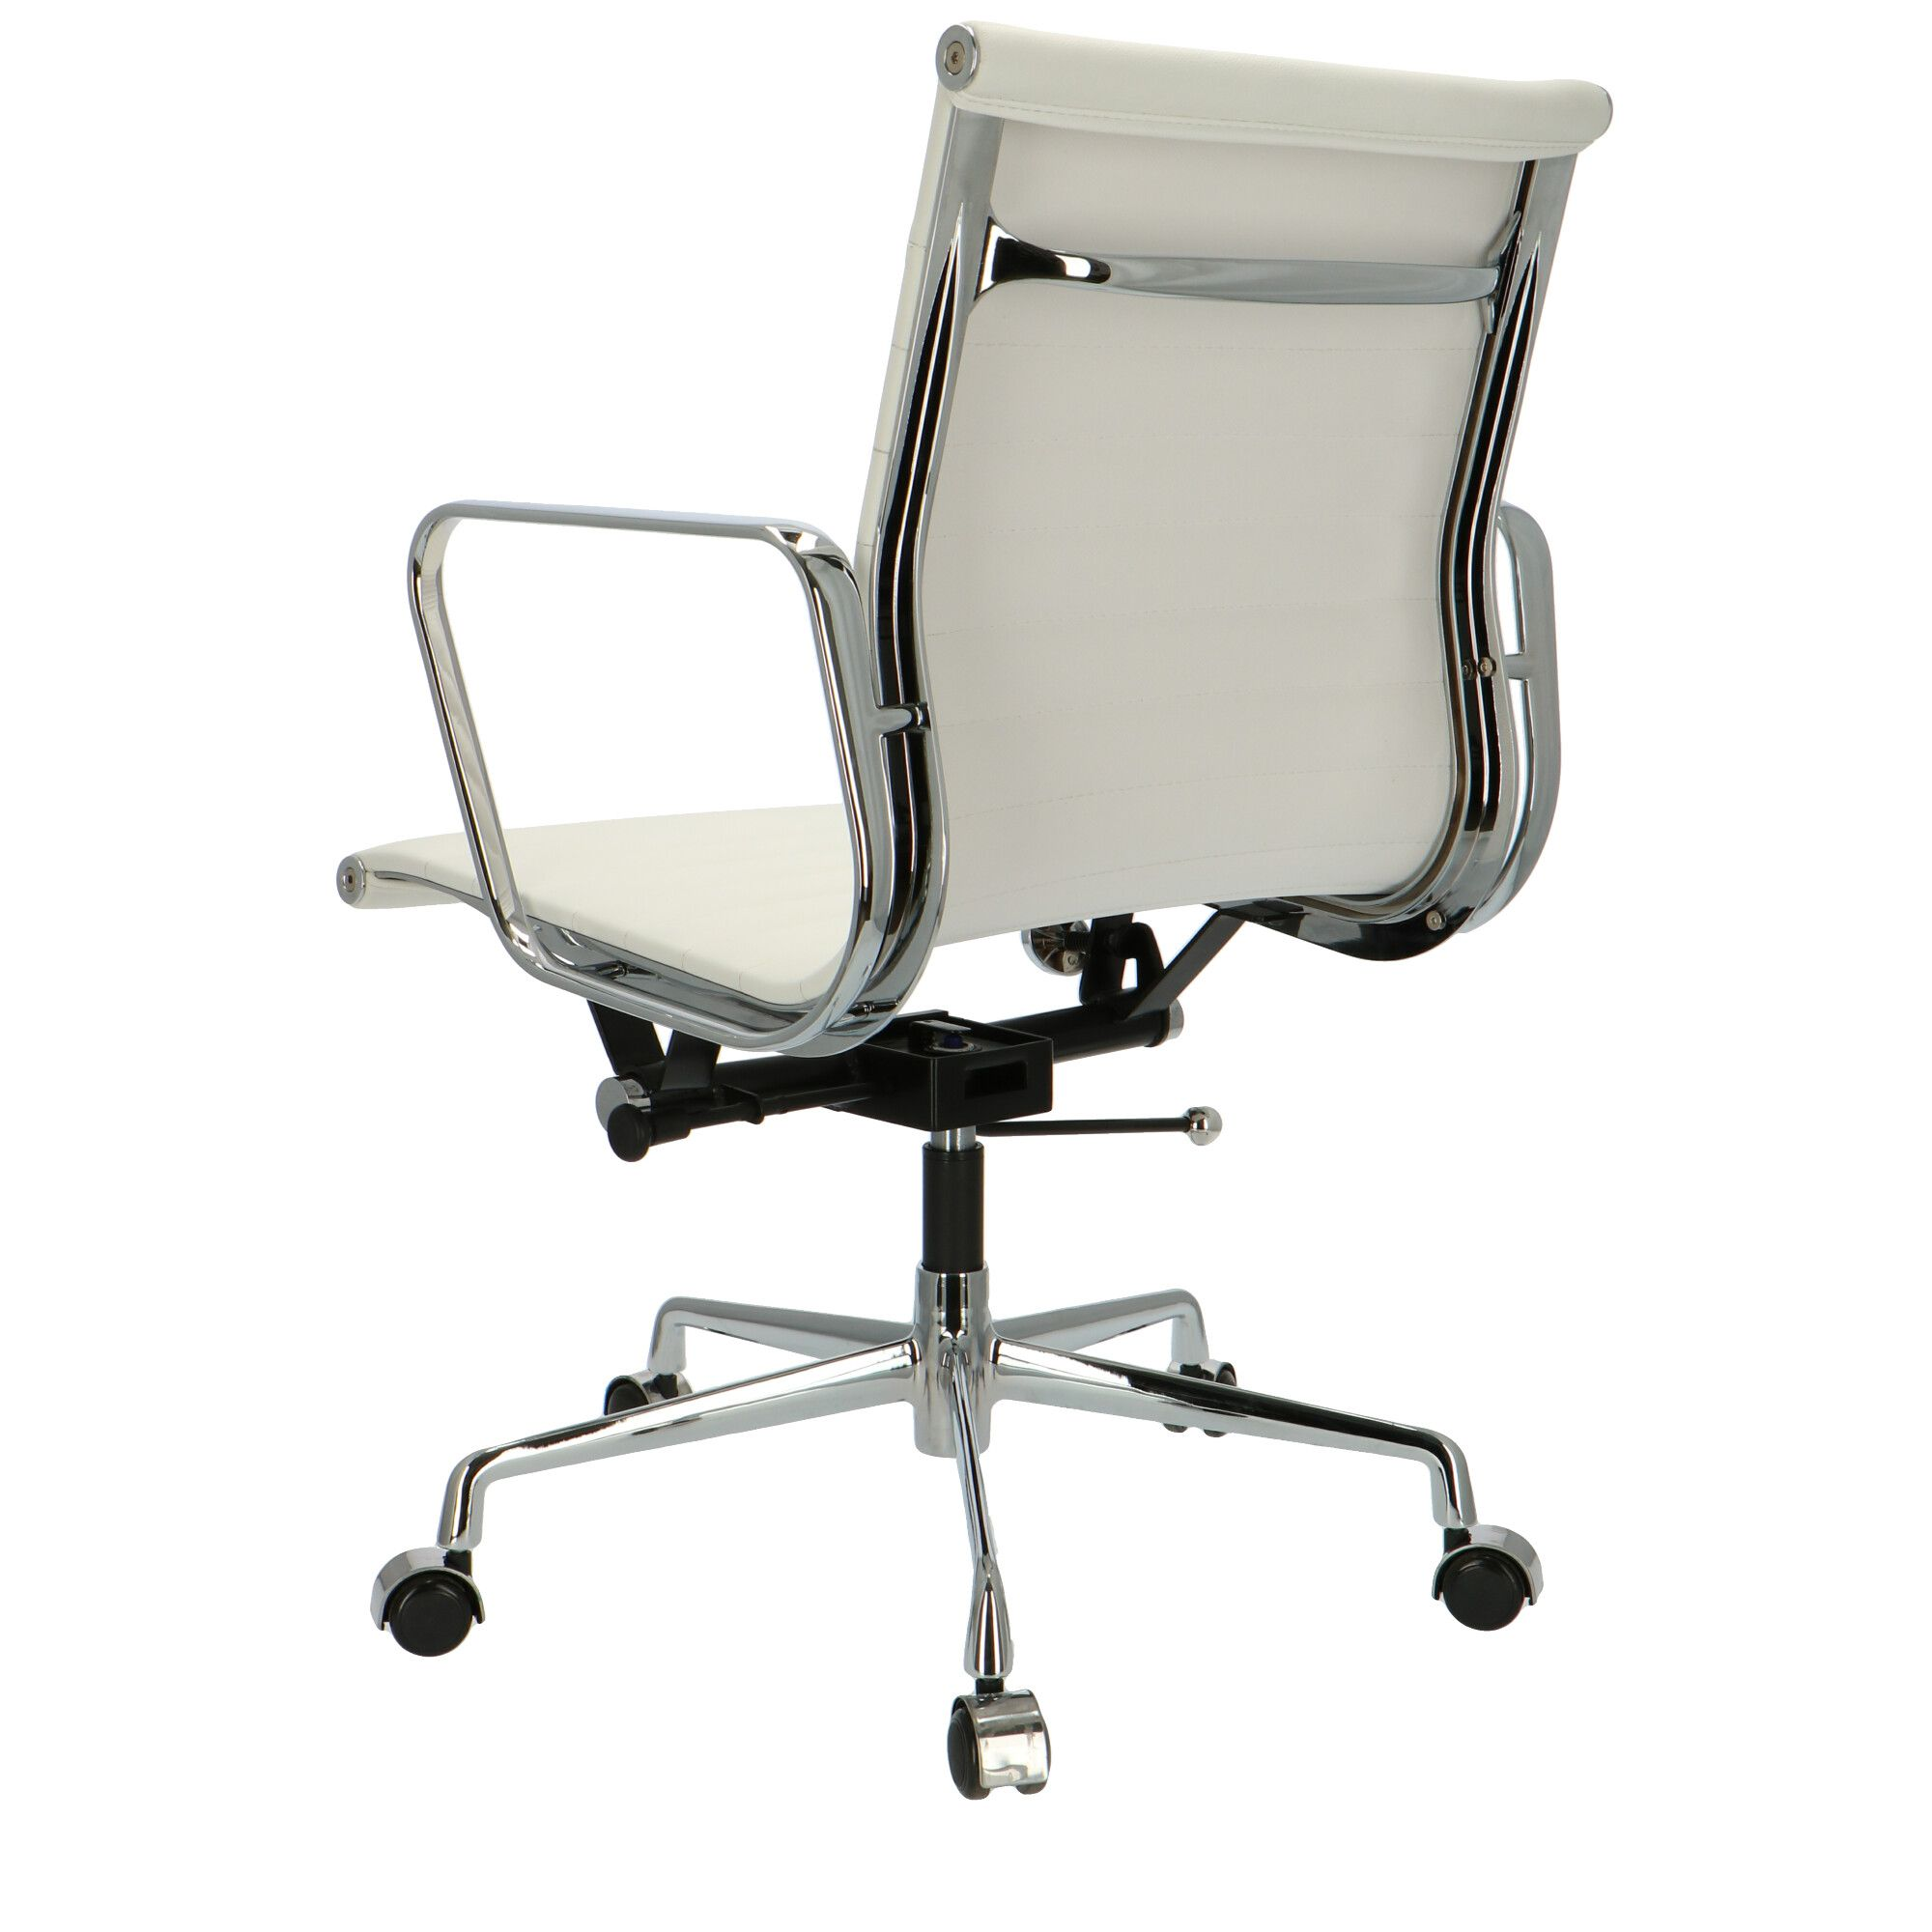 Eames Desk Chair Eames Office Chair Ea 117 White Leather